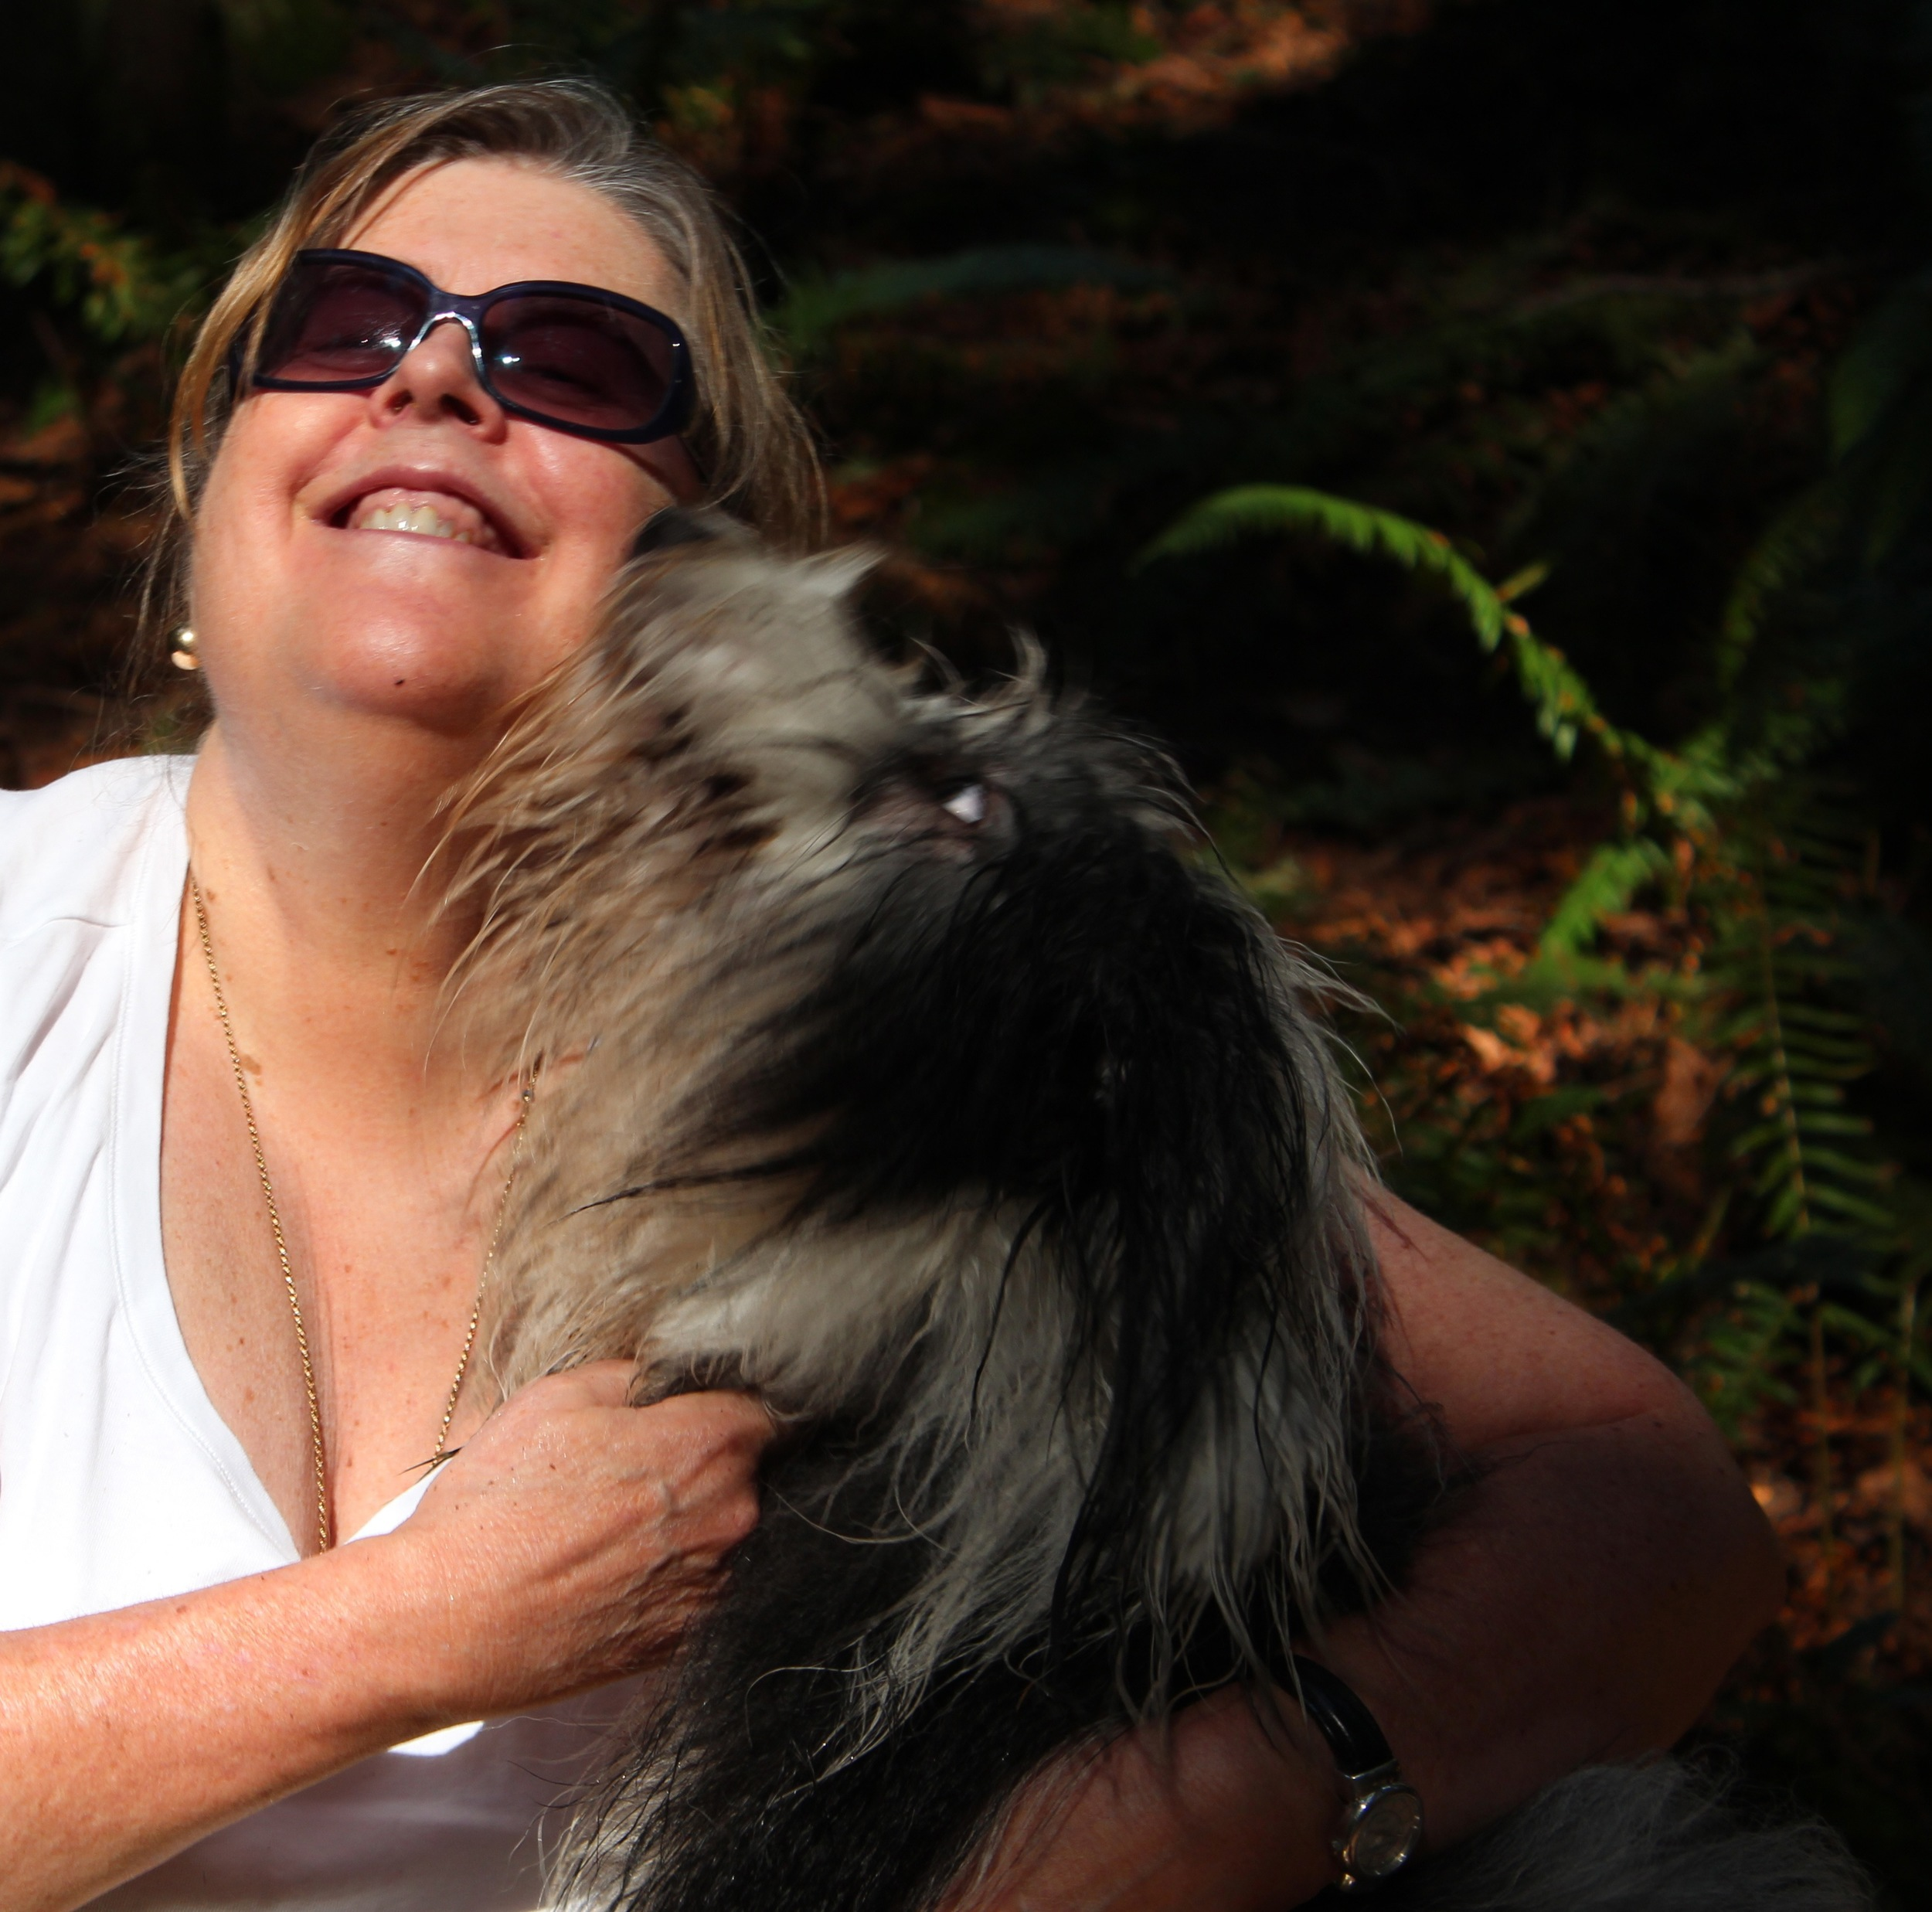 Lily is actually black and white, but not so after a day in the forest romping in water and mud! This is a picture of a happy woman and her dog, yes, but more, it's a picture of love. Of the generosity and joy of it.